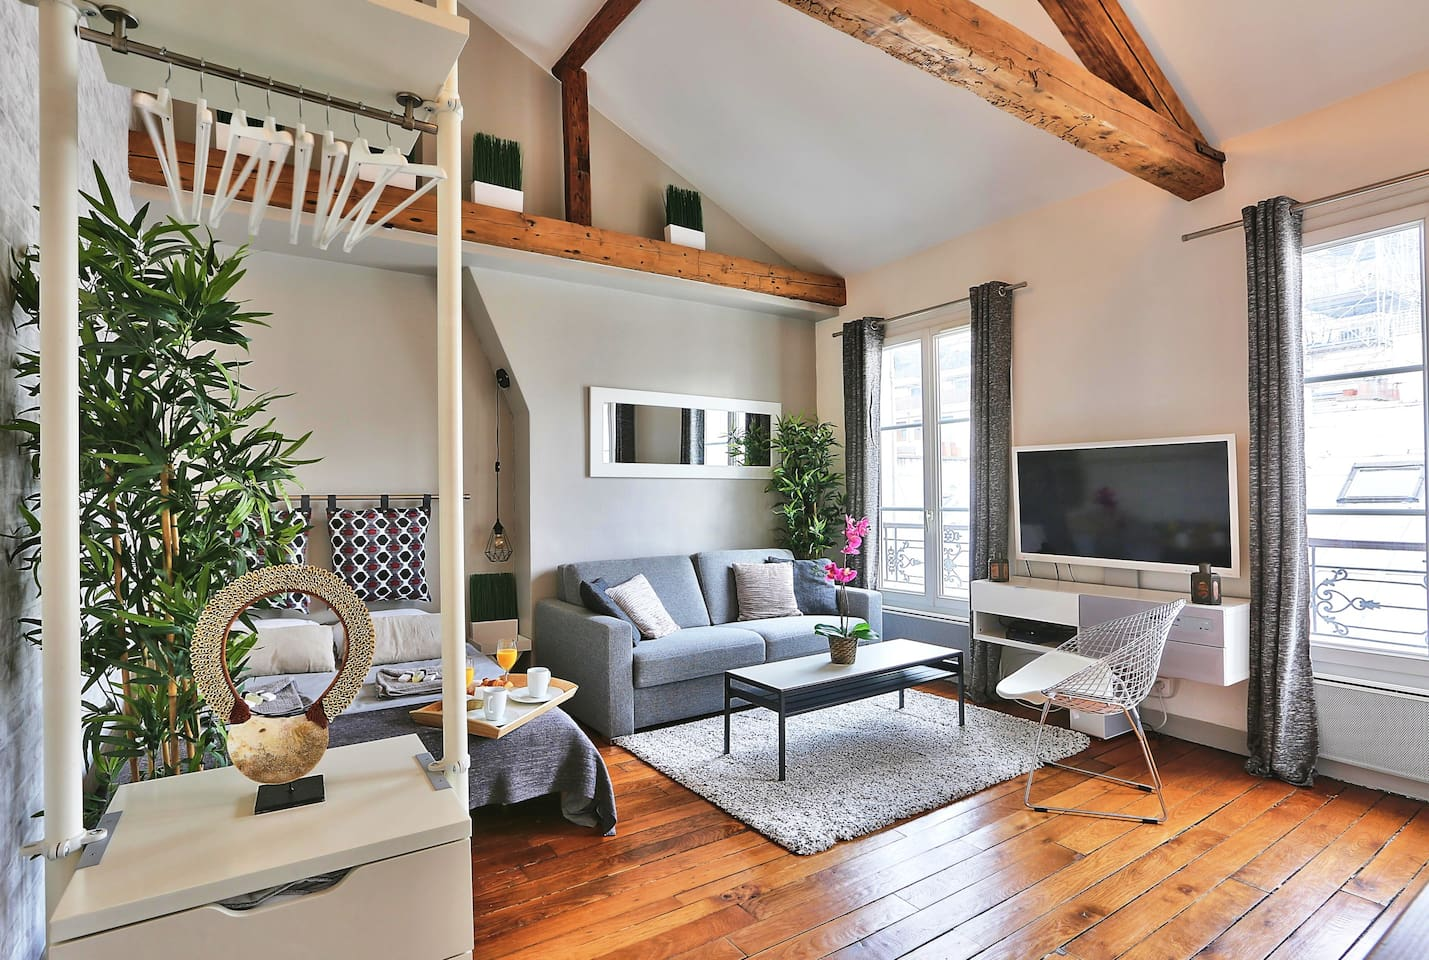 Exposed beams and a beautiful wooden floor.